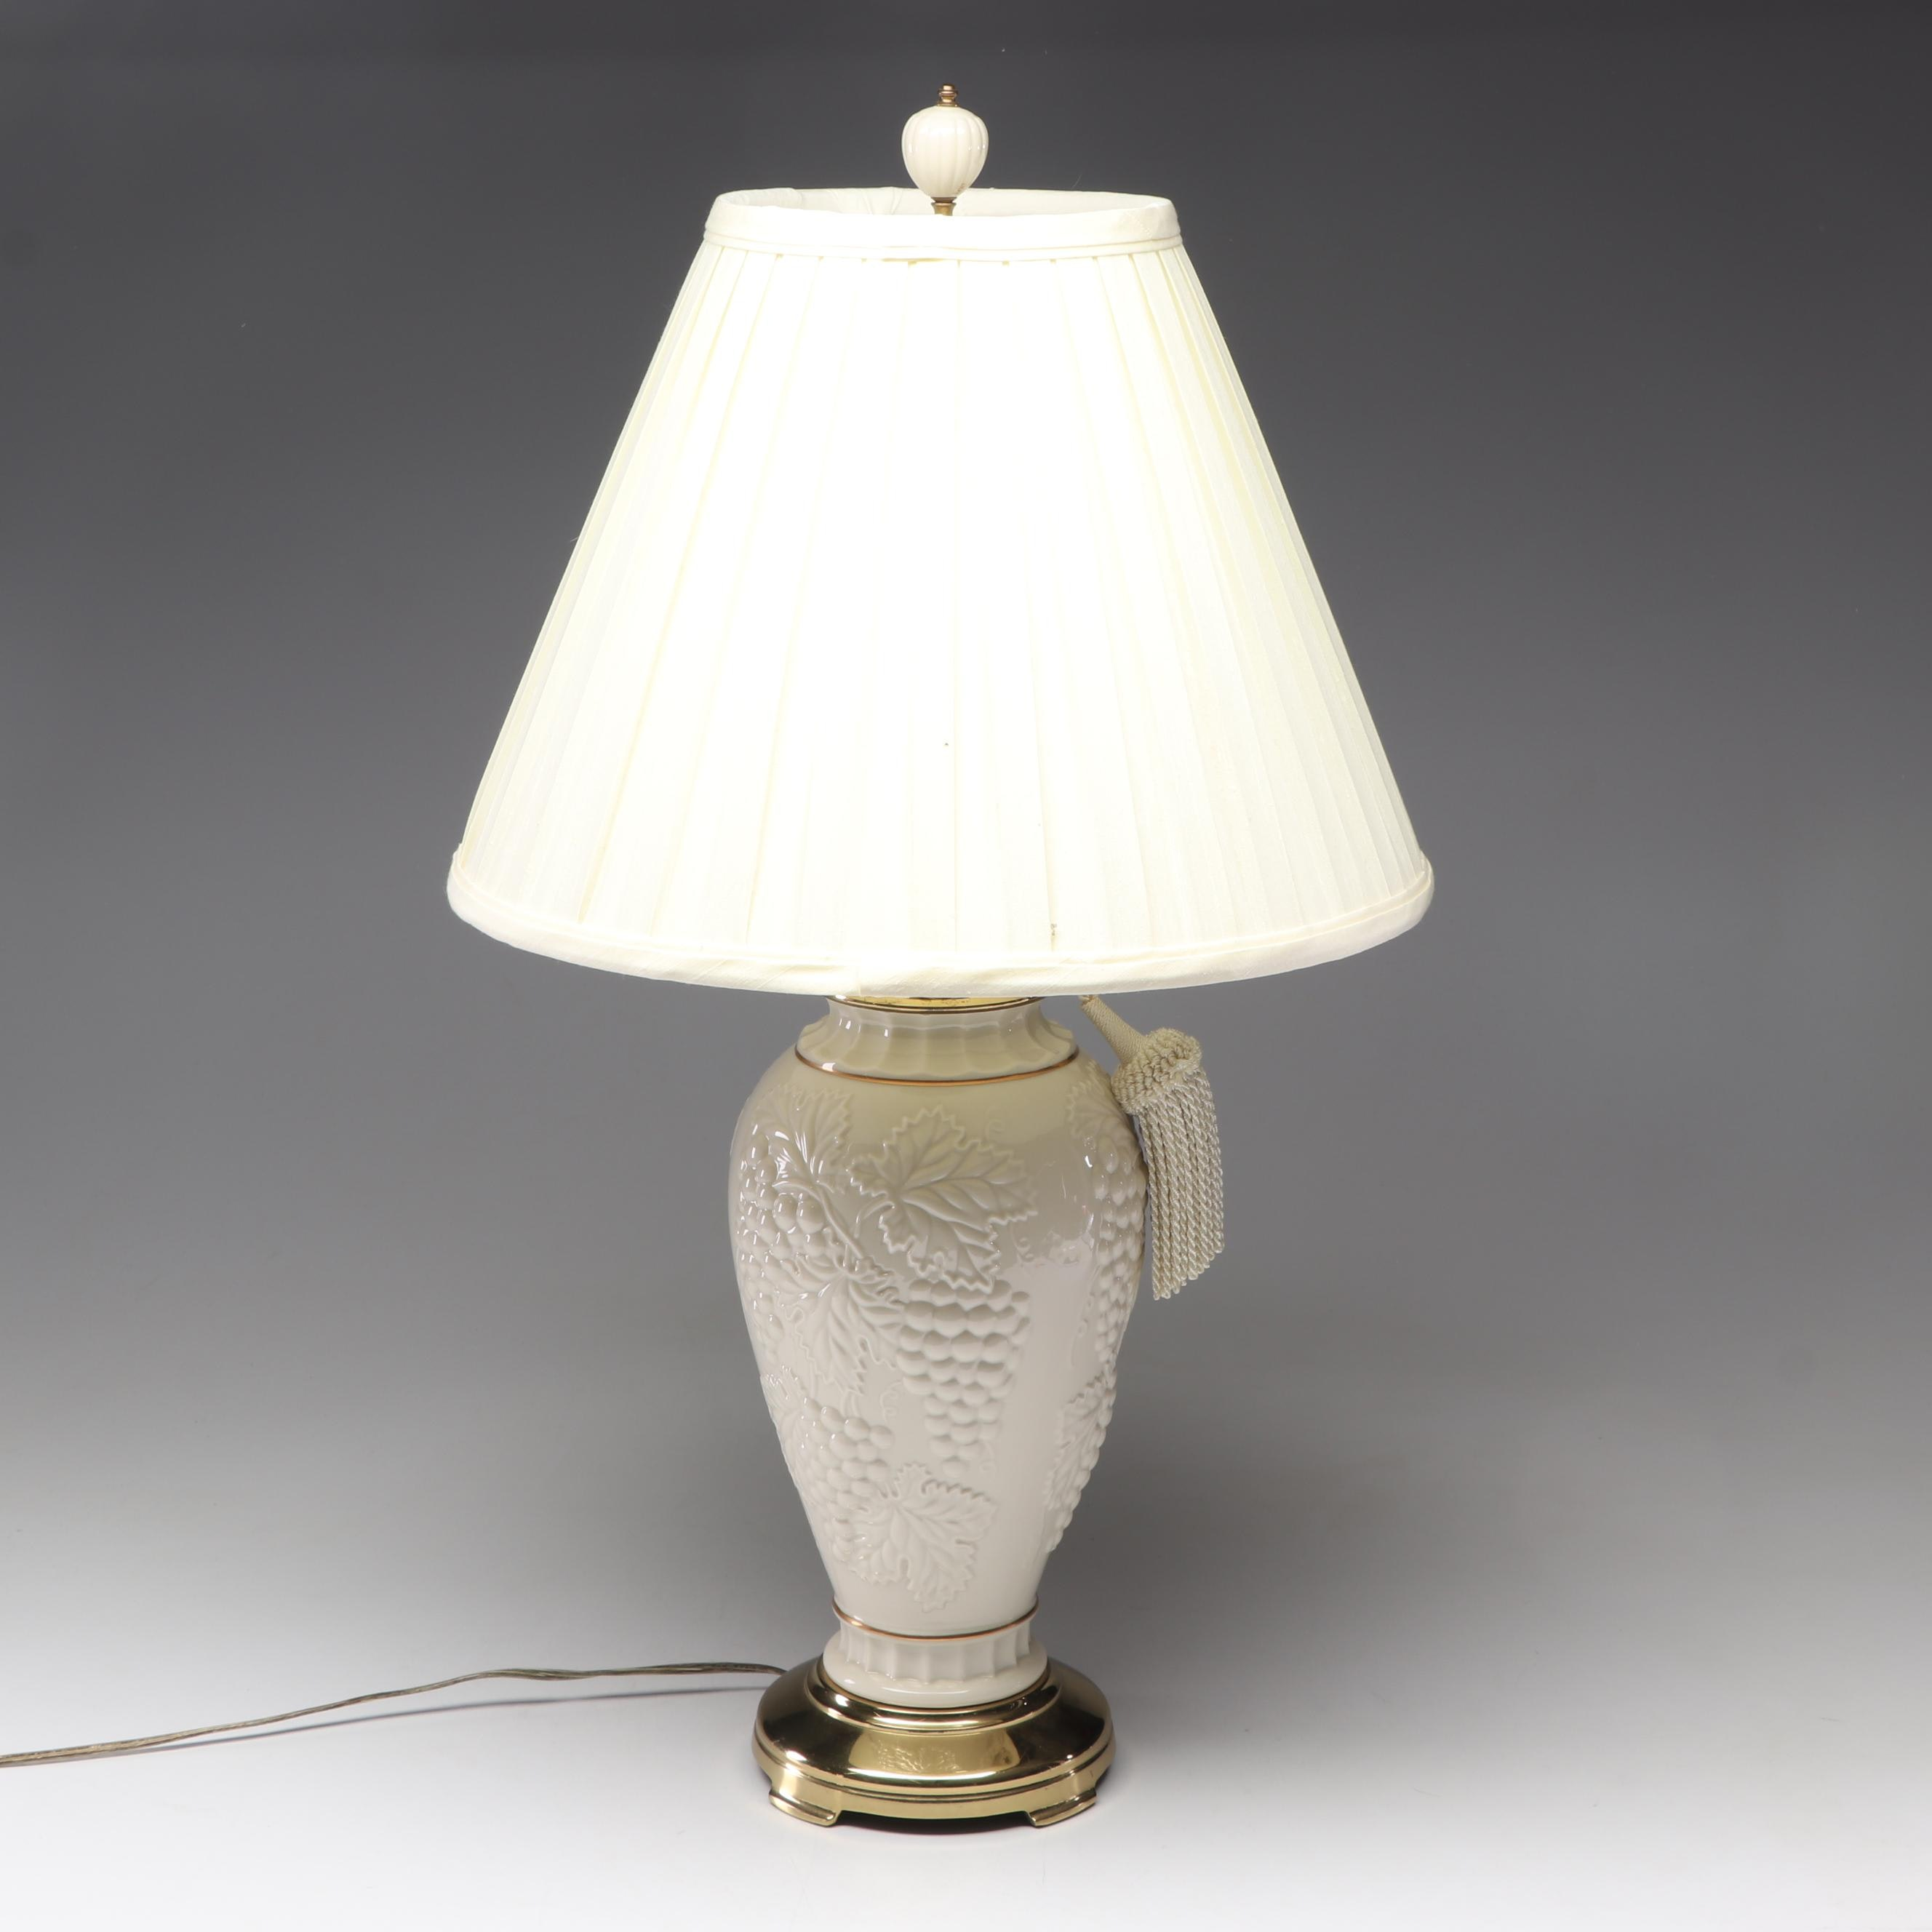 Lenox White Grape Pattern Bone China Table Lamp